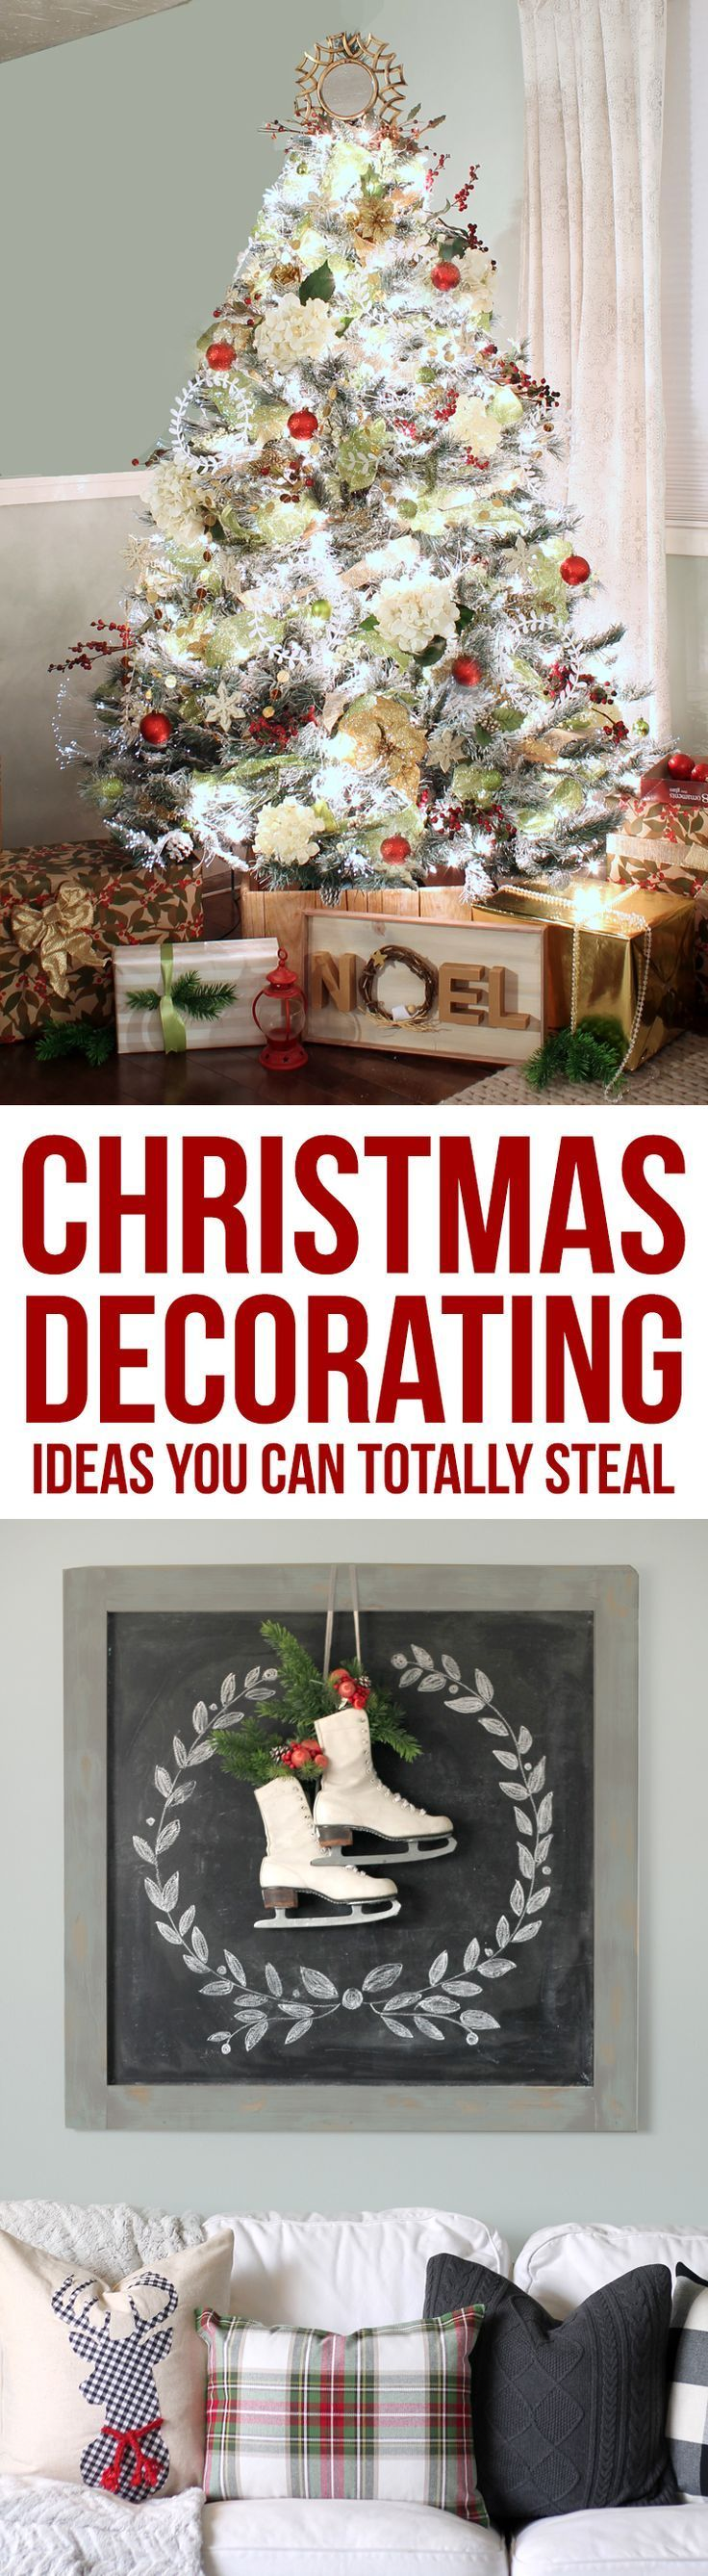 Inexpensive ways to decorate your home for